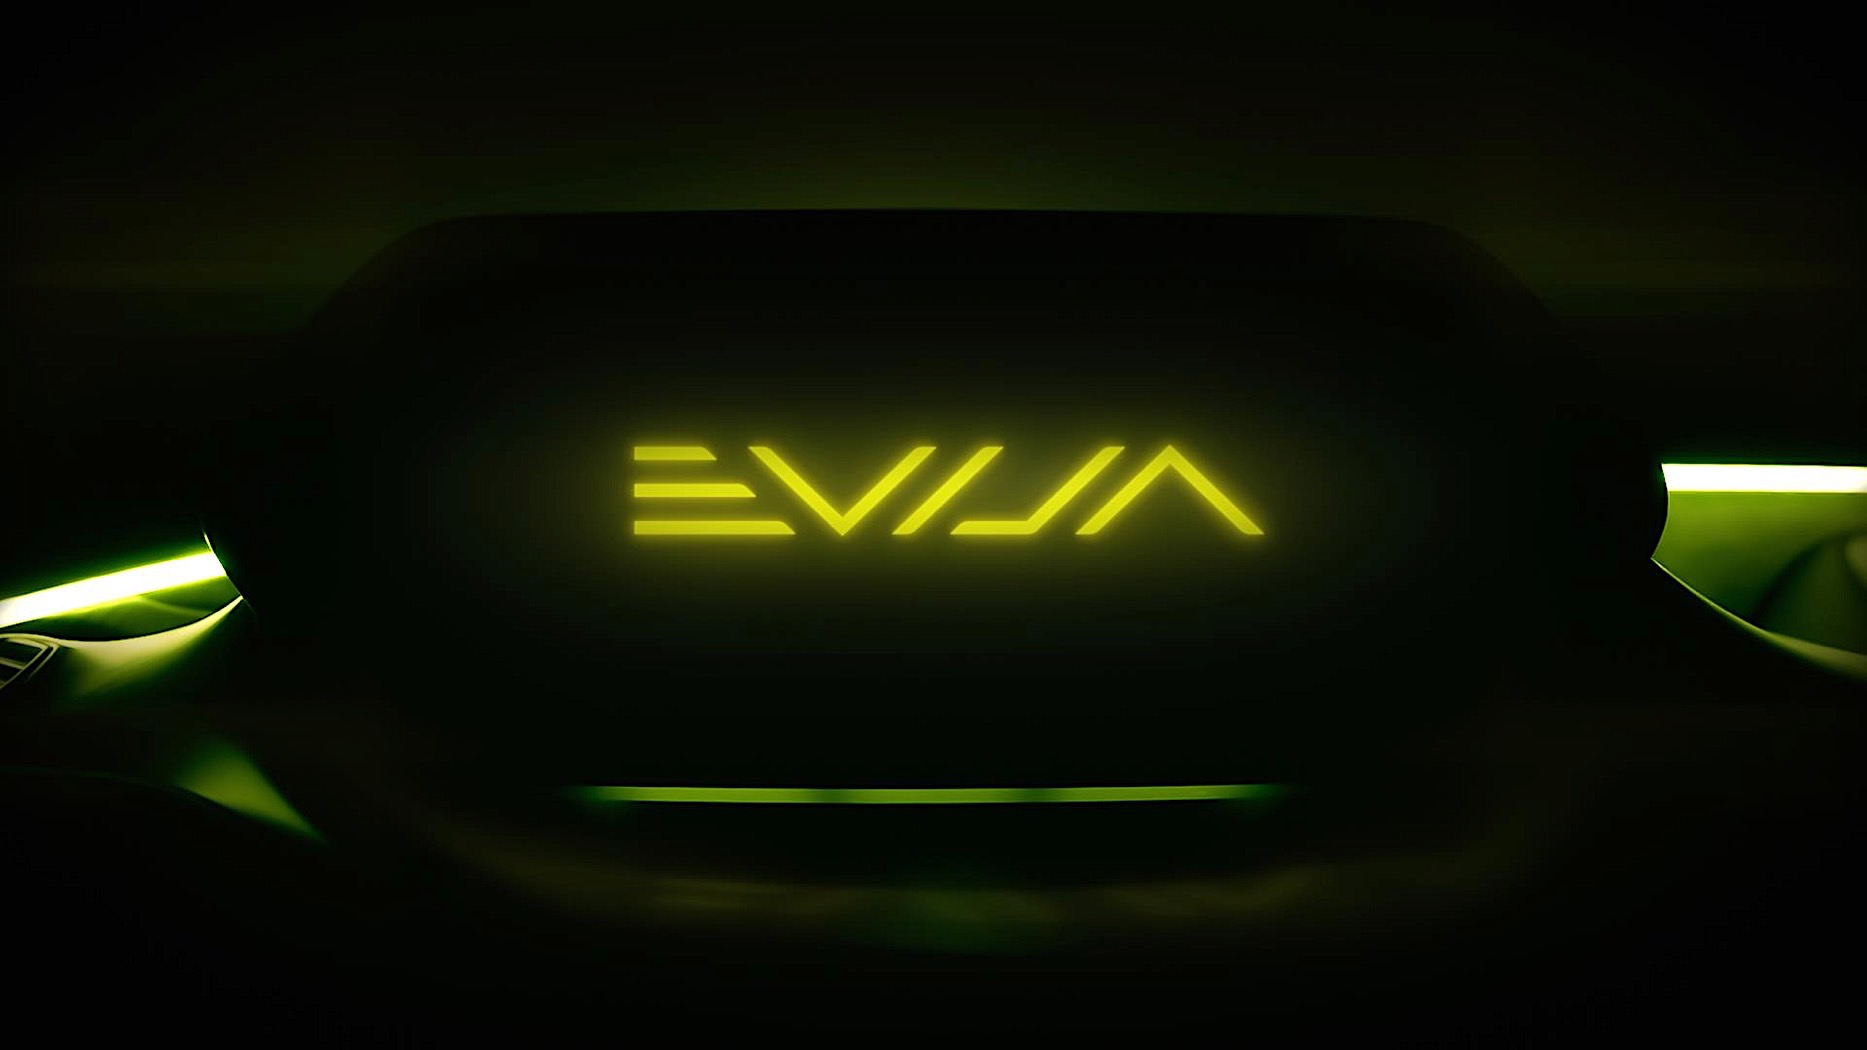 Lotus Evija - Hethel reveals name of its first all-electric hypercar